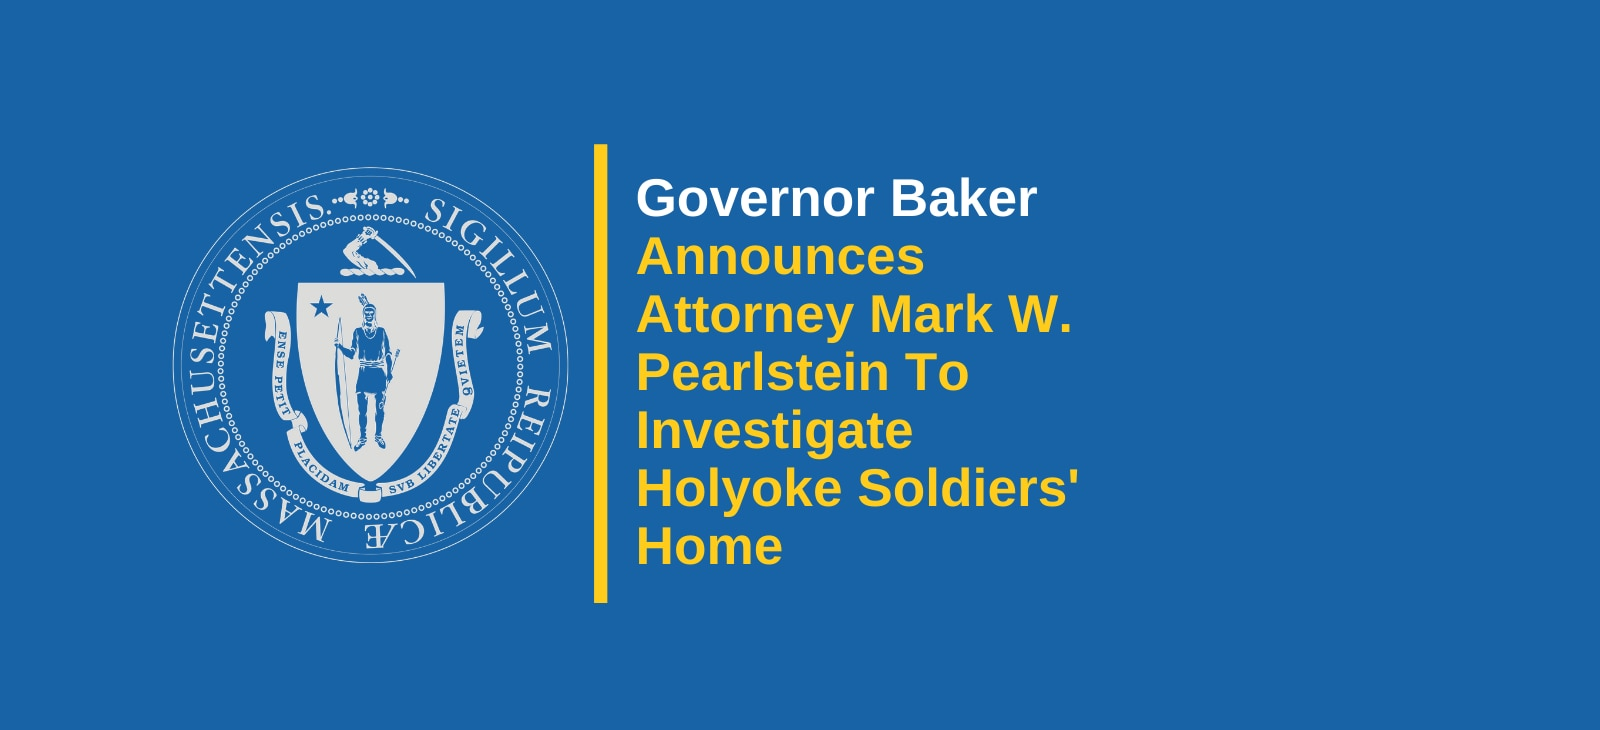 Governor Charlie Baker Announces Attorney Mark W. Pearlstein to Investigate Holyoke Soldiers' Home